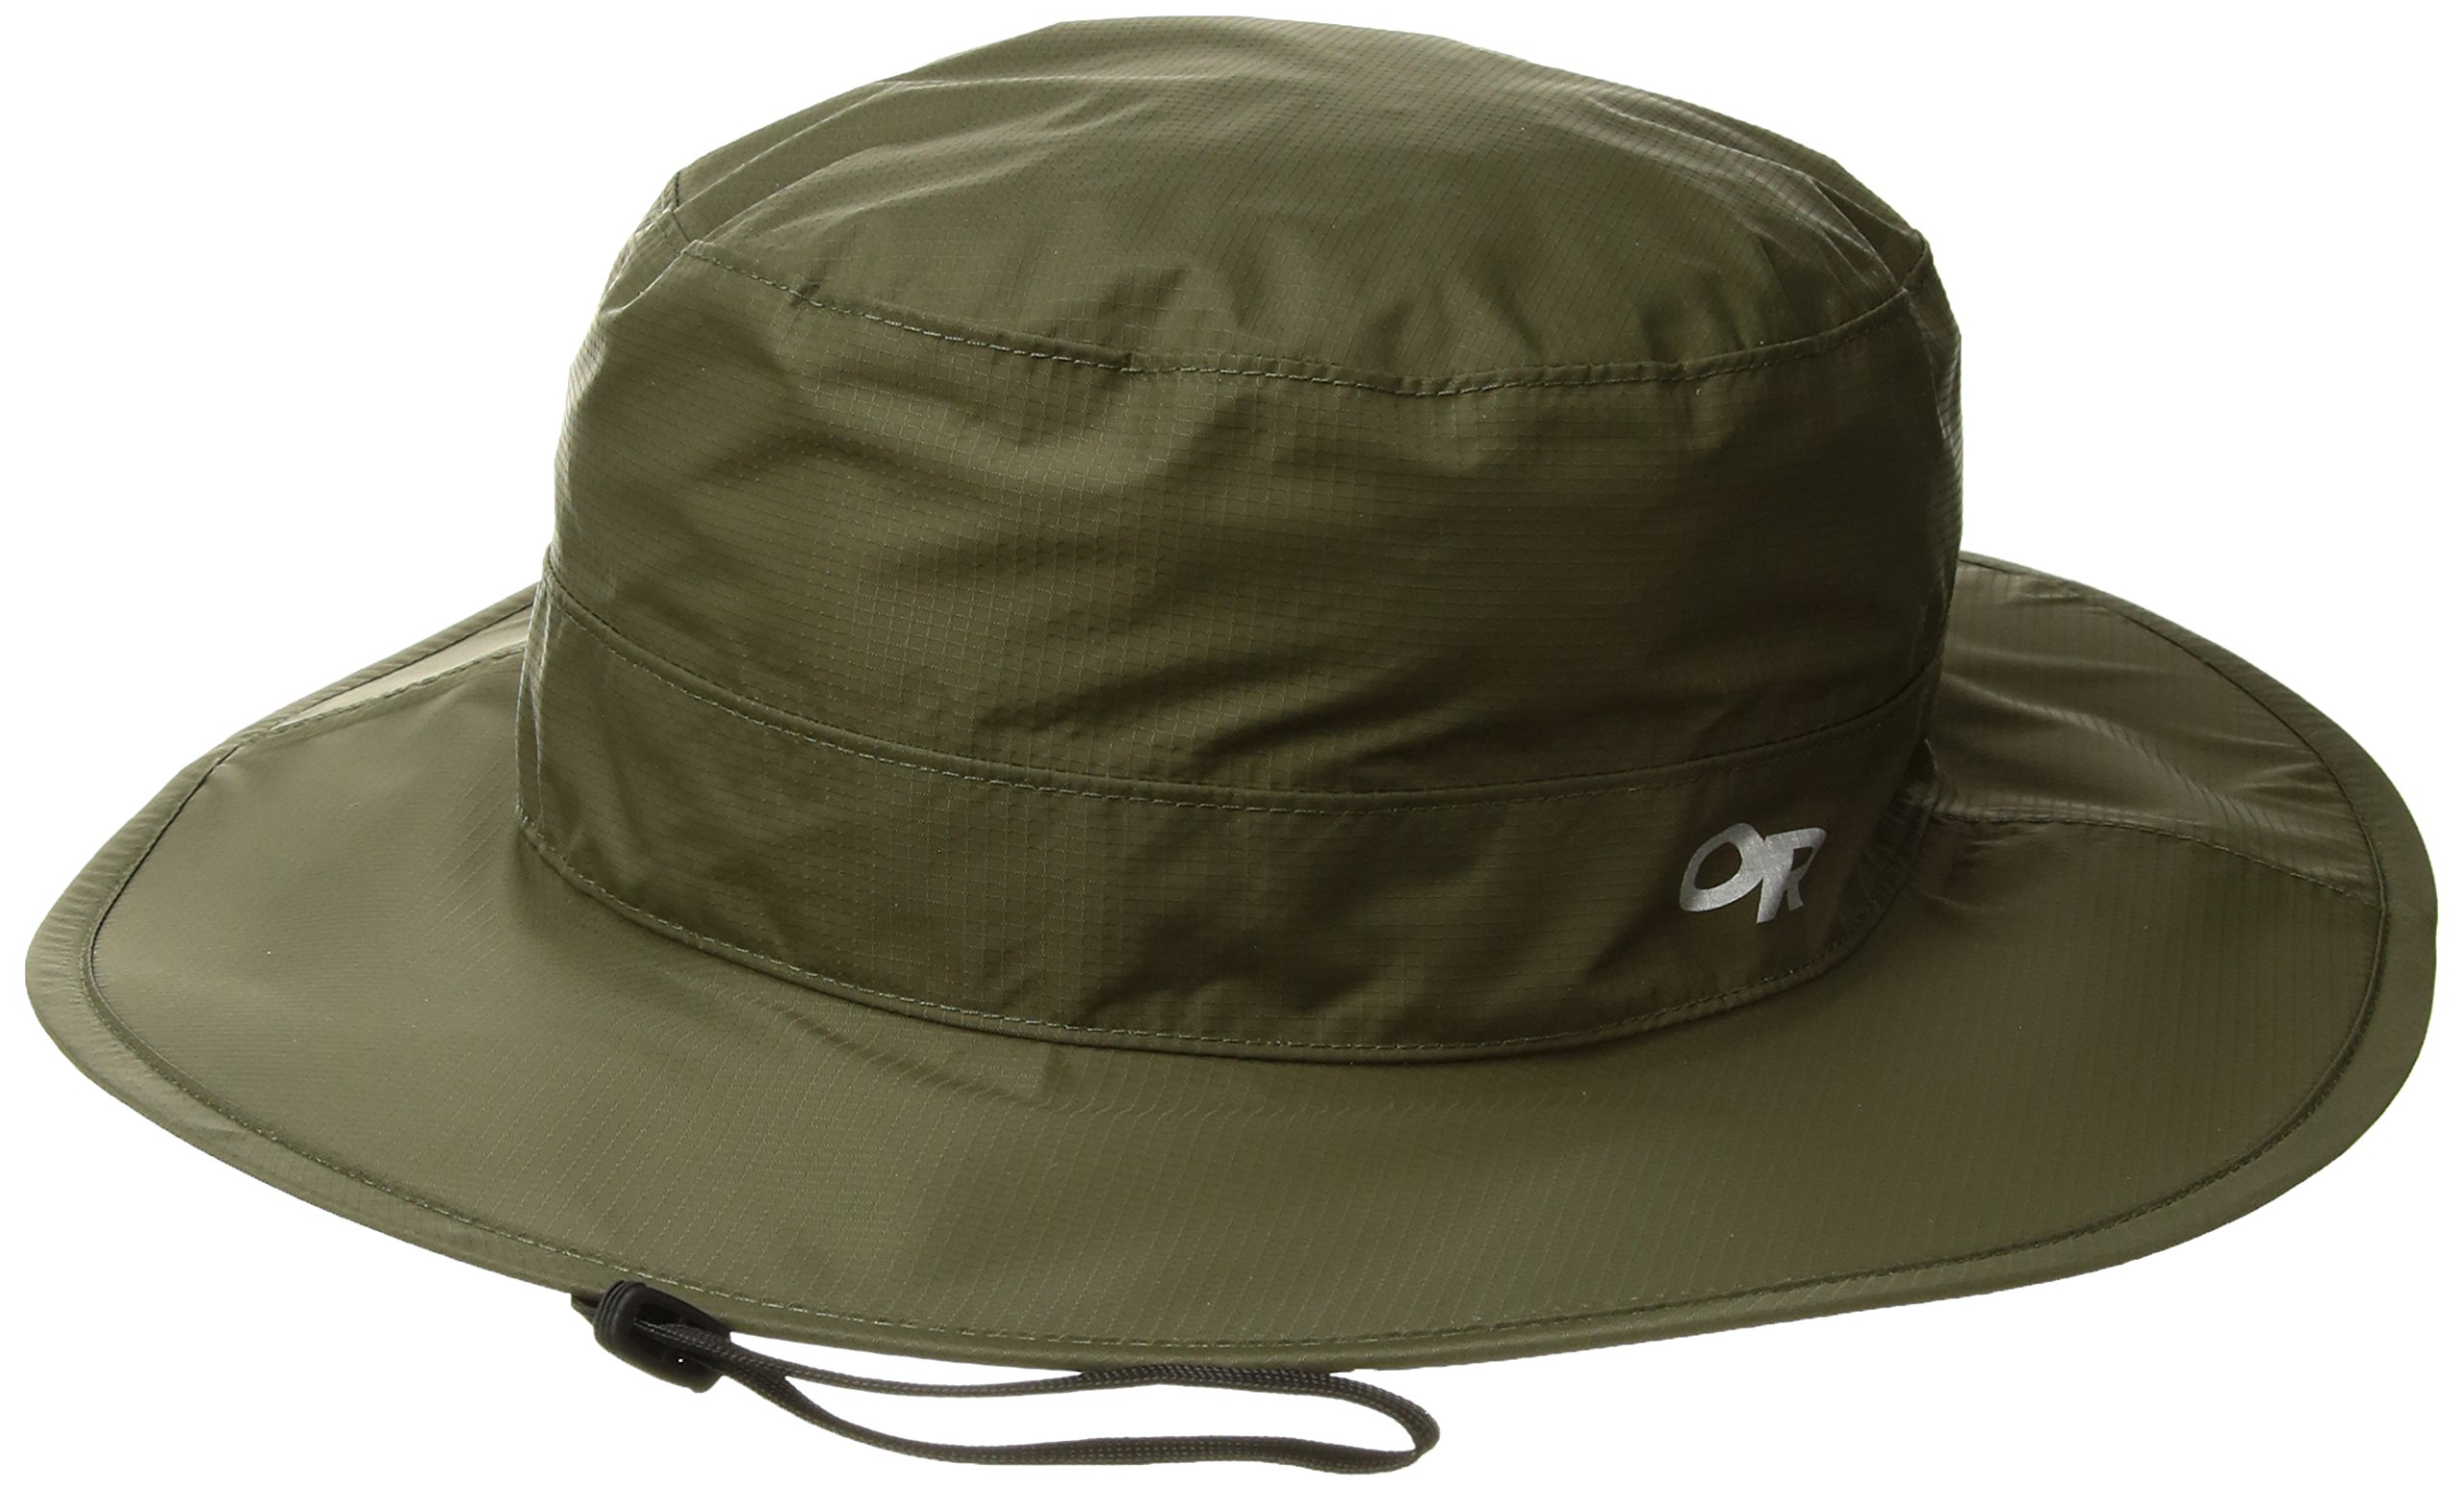 Outdoor Research Cloud Forest Rain Hat, Fatigue, Large/X-Large